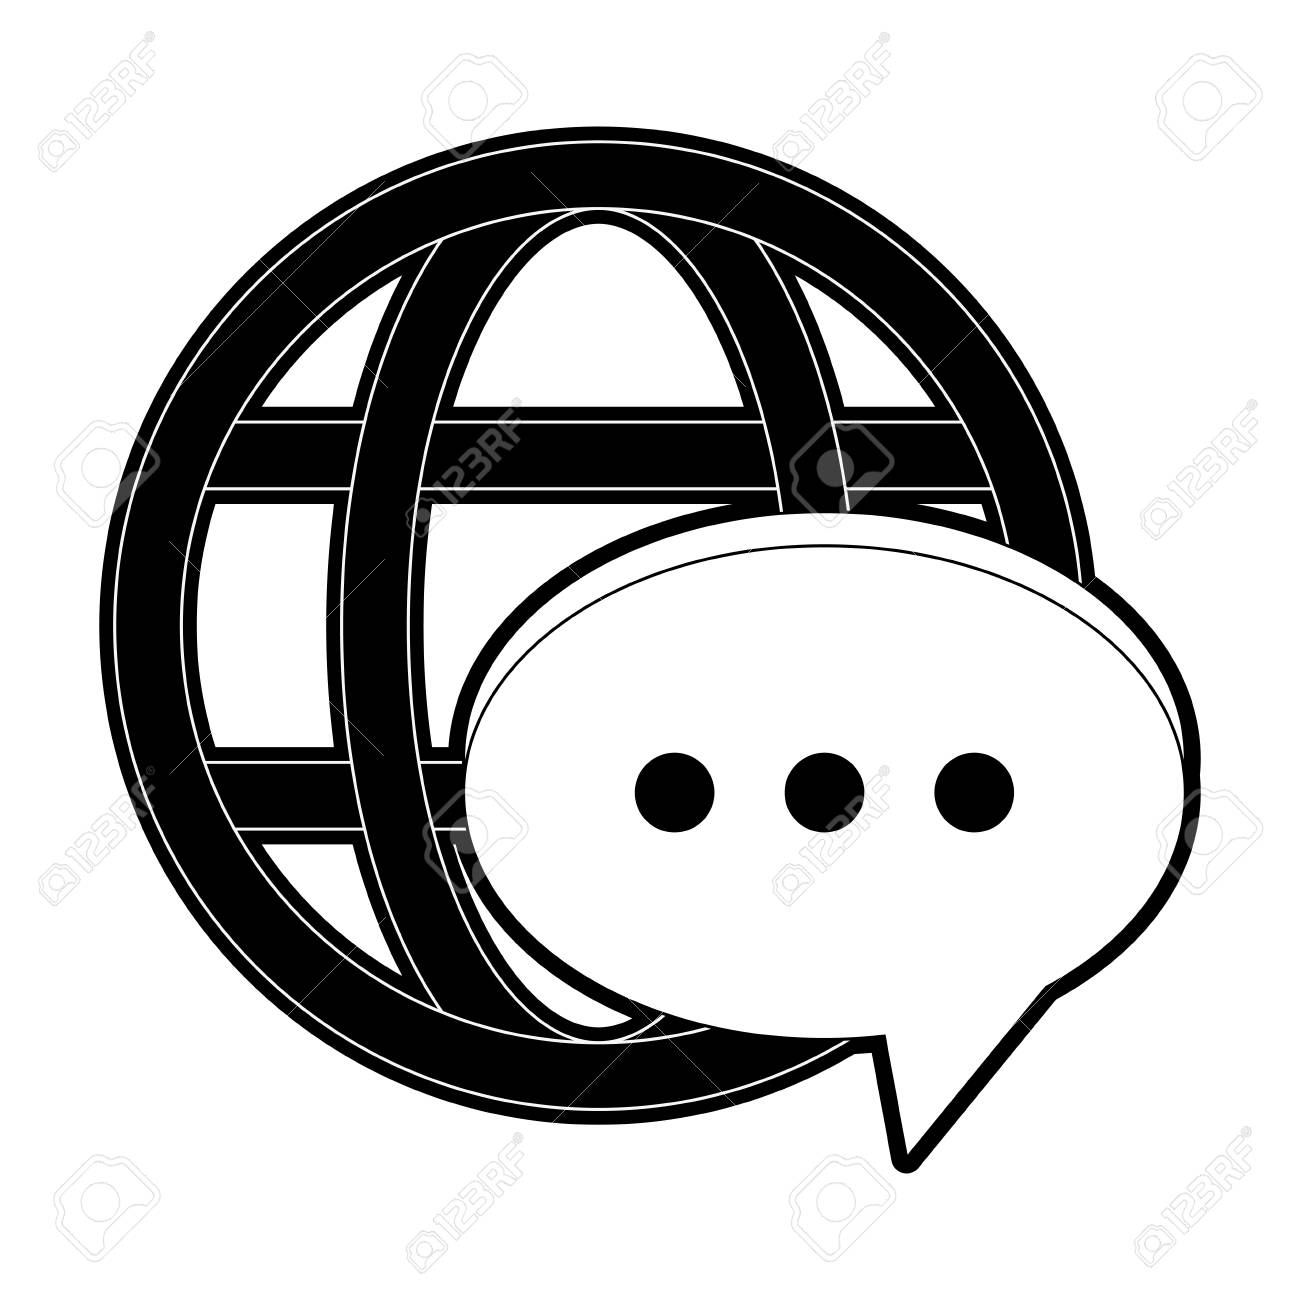 Banque dimages chat bubble global messaging icon image vector illustration design black and white